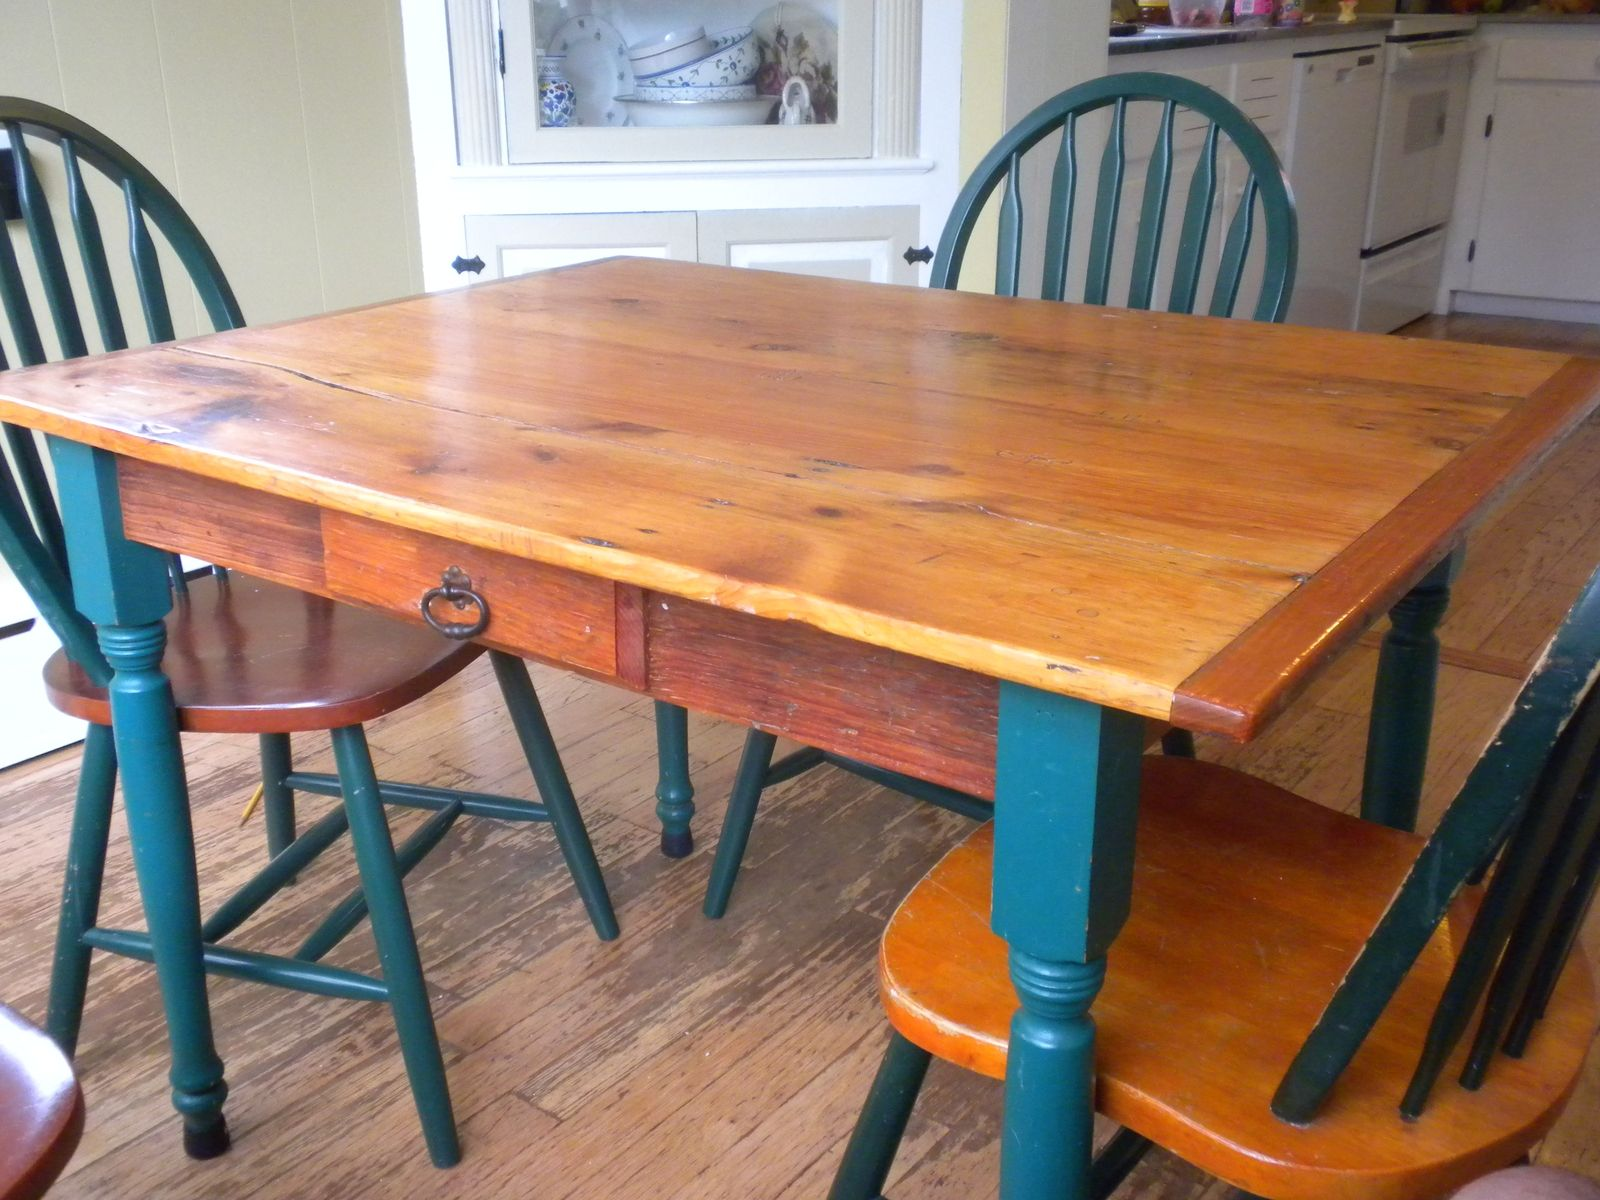 Hand Crafted Kitchen Farm Table By DMansell Creative Rustic Design - Affordable farm table